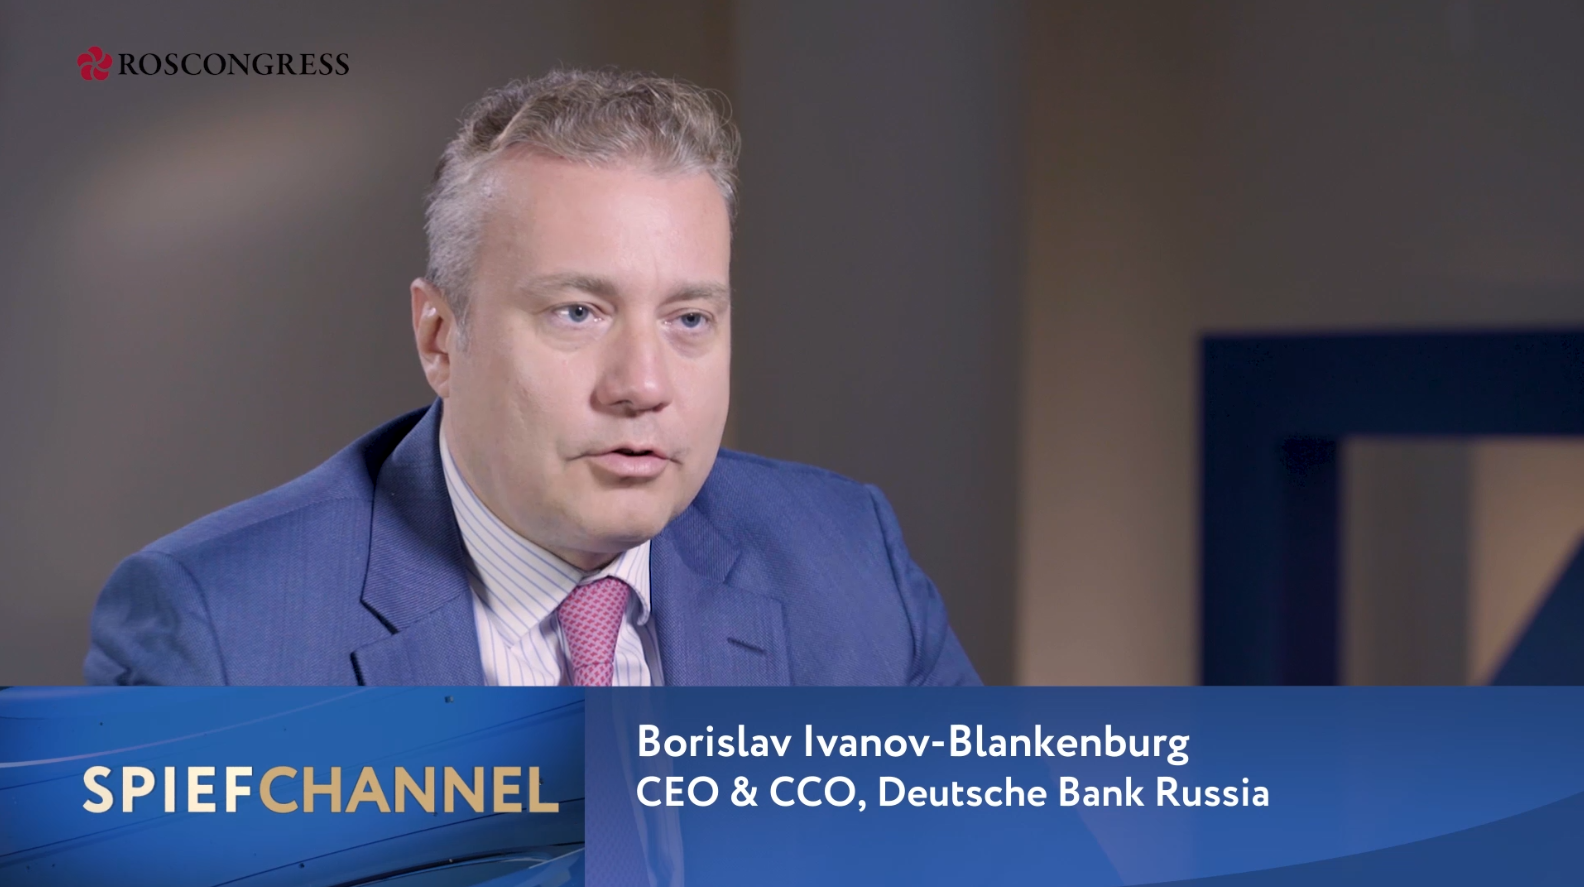 Borislav Ivanov-Blankenburg, CEO & CCO, Deutsche Bank in Russia